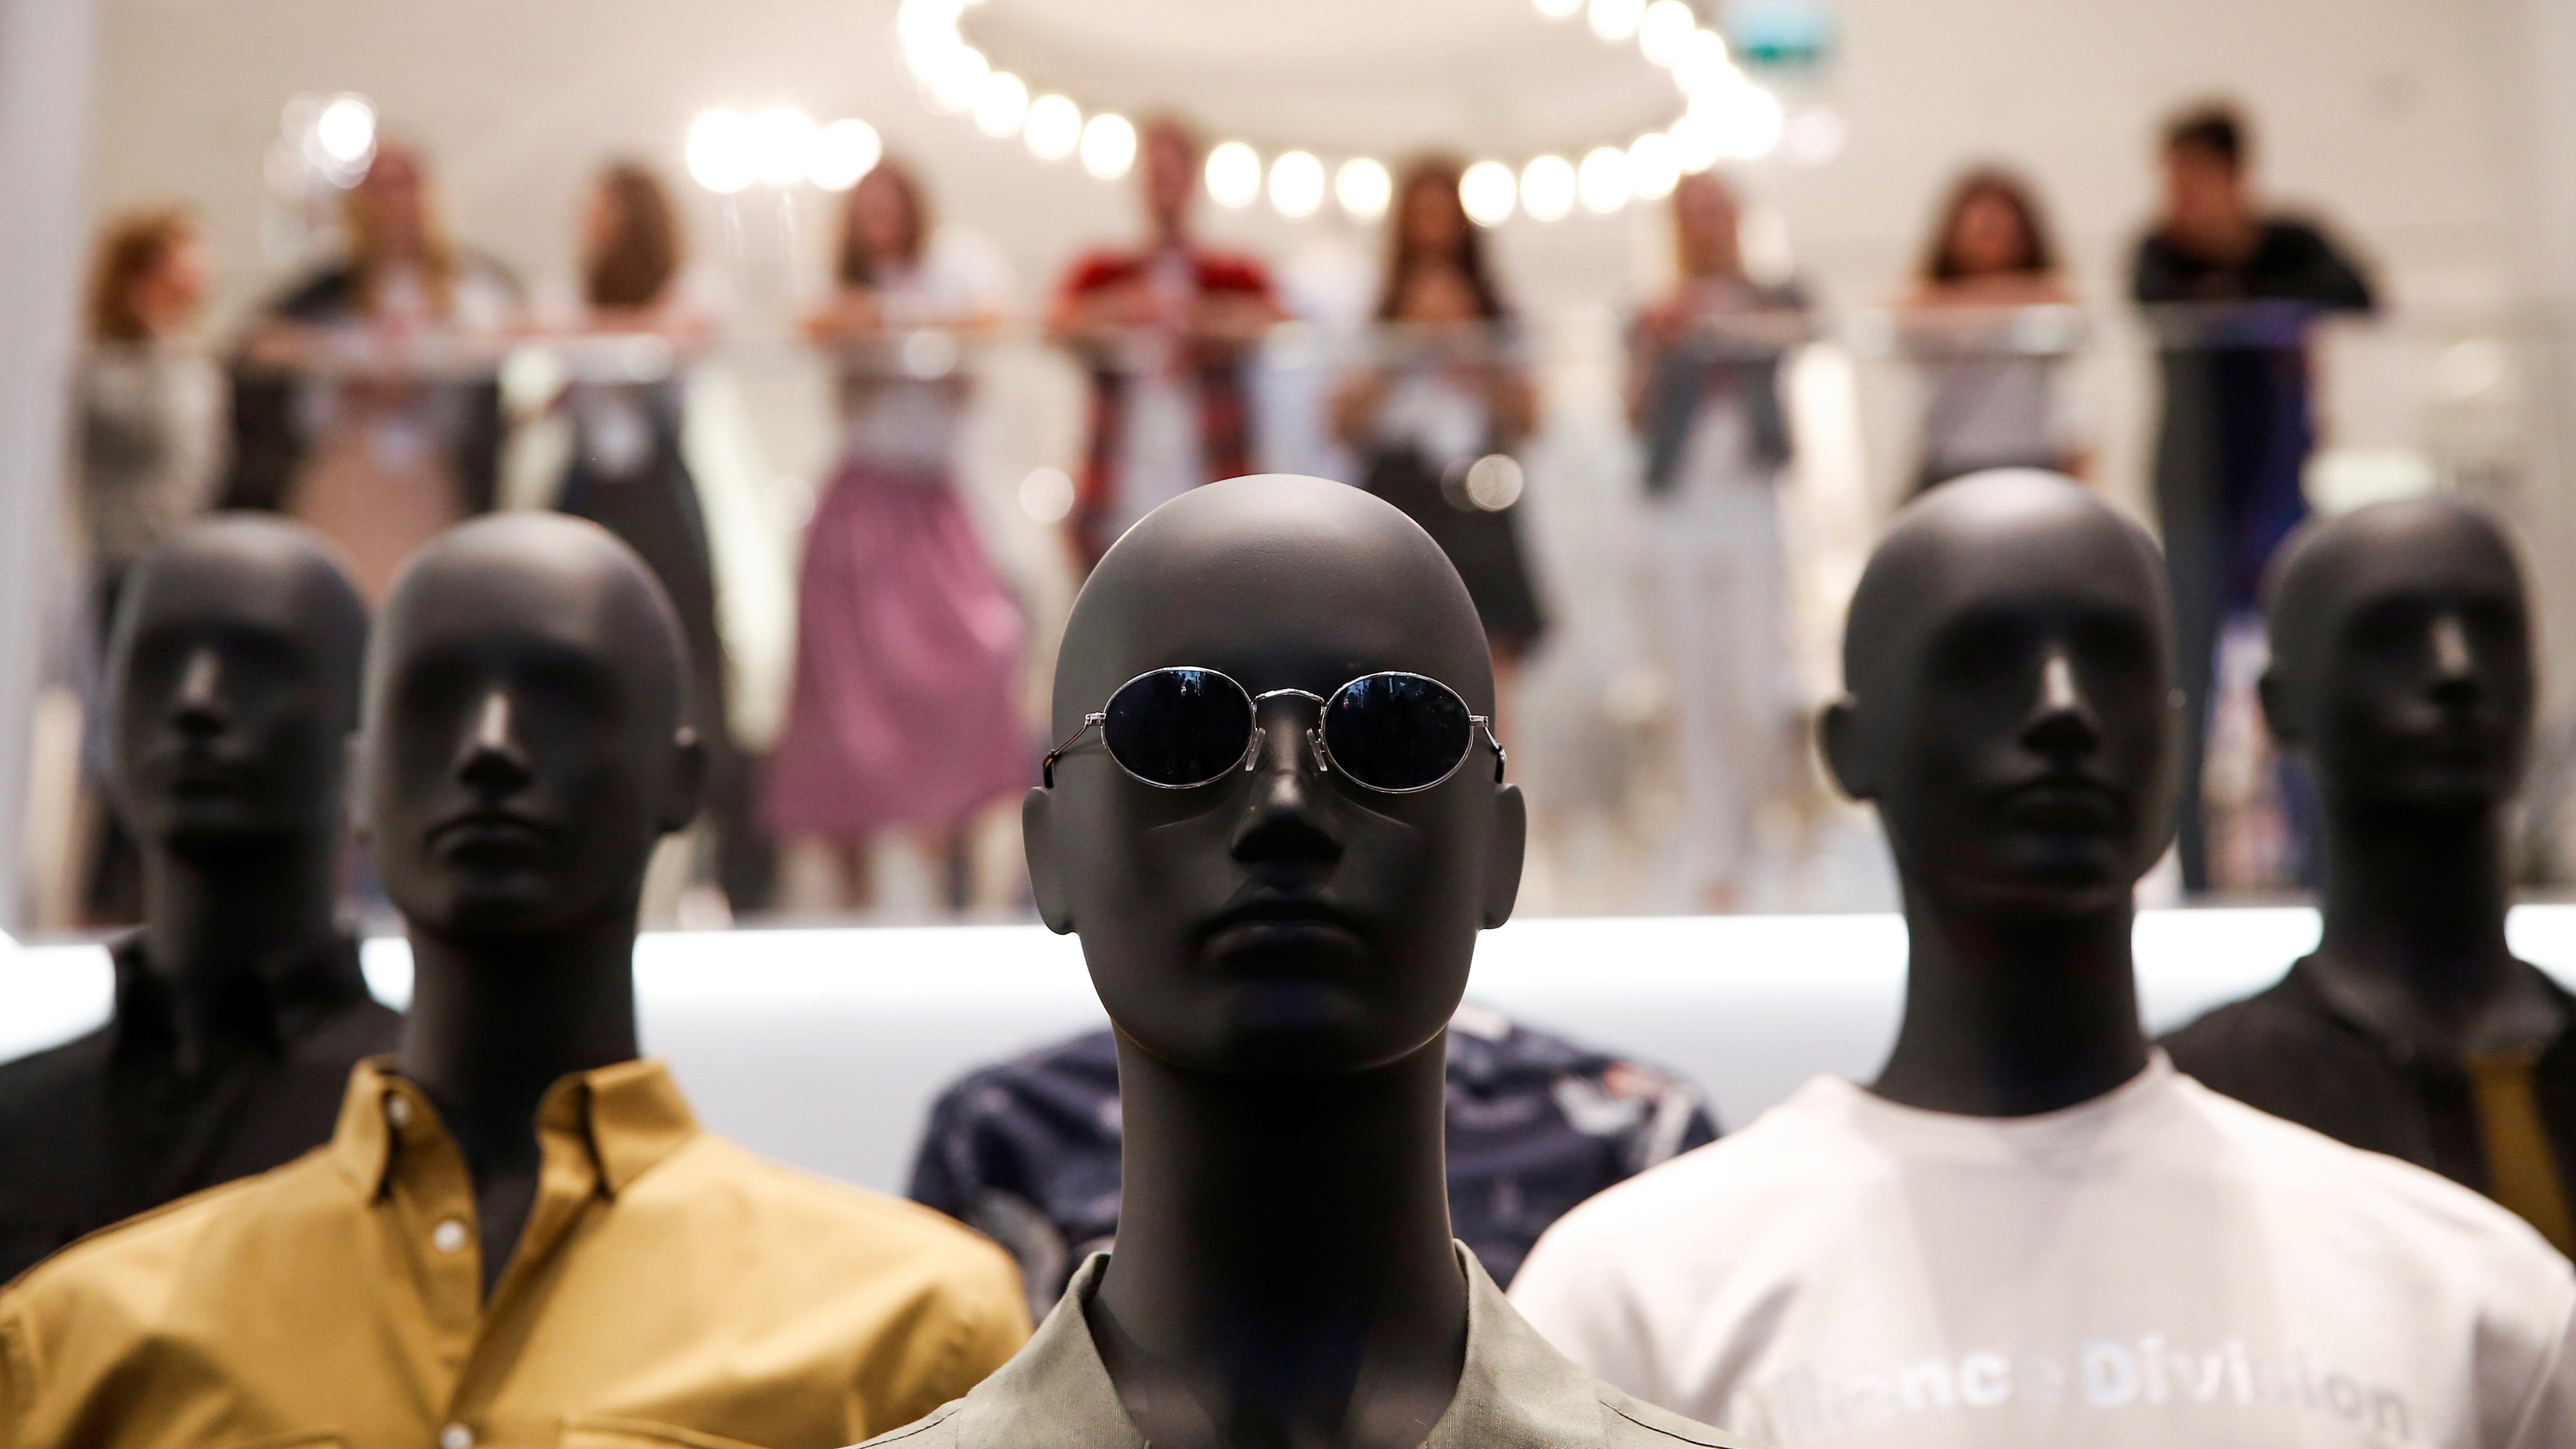 Mannequins are seen at the Swedish fashion retailer Hennes & Mauritz (H&M) store on its opening day in central Moscow, Russia, May 27, 2017. REUTERS/Maxim Shemetov - RC1C3738F7A0